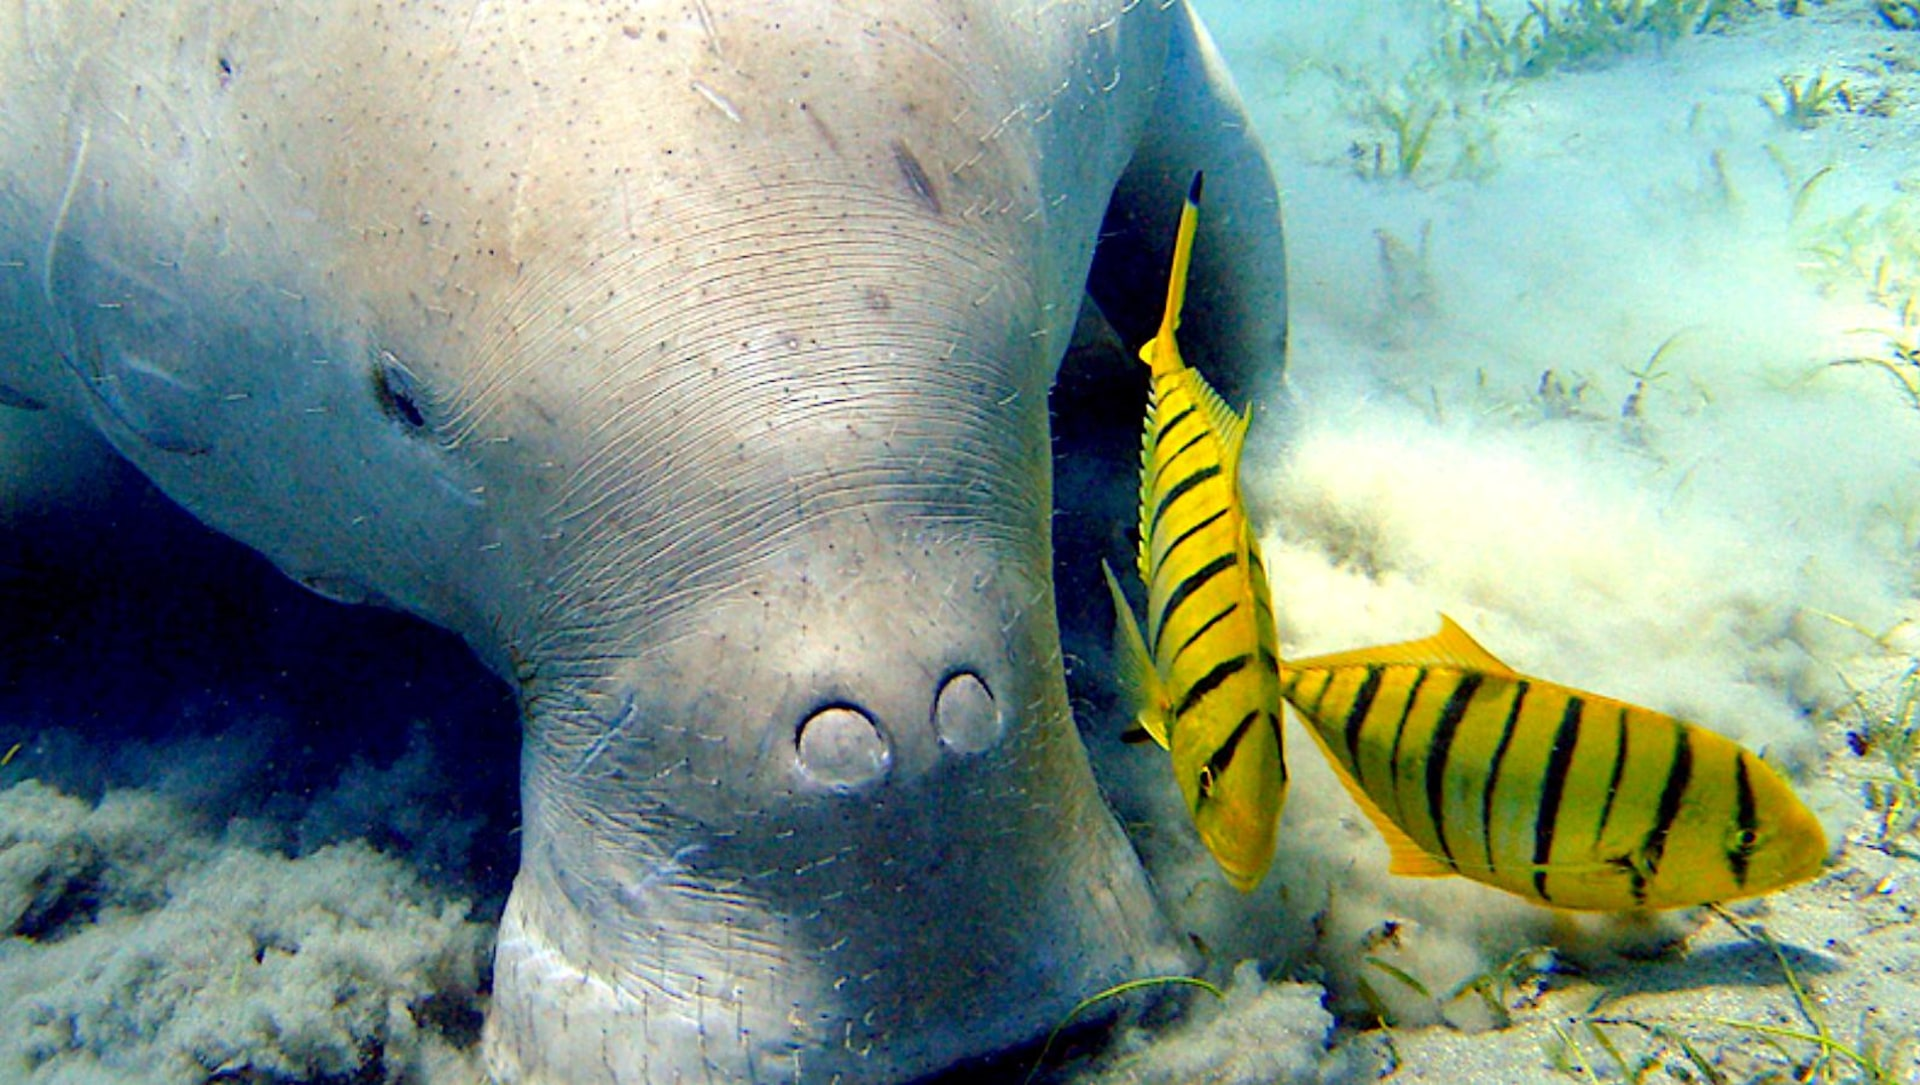 Fish workers critical to saving dugongs and their seagrass habitat